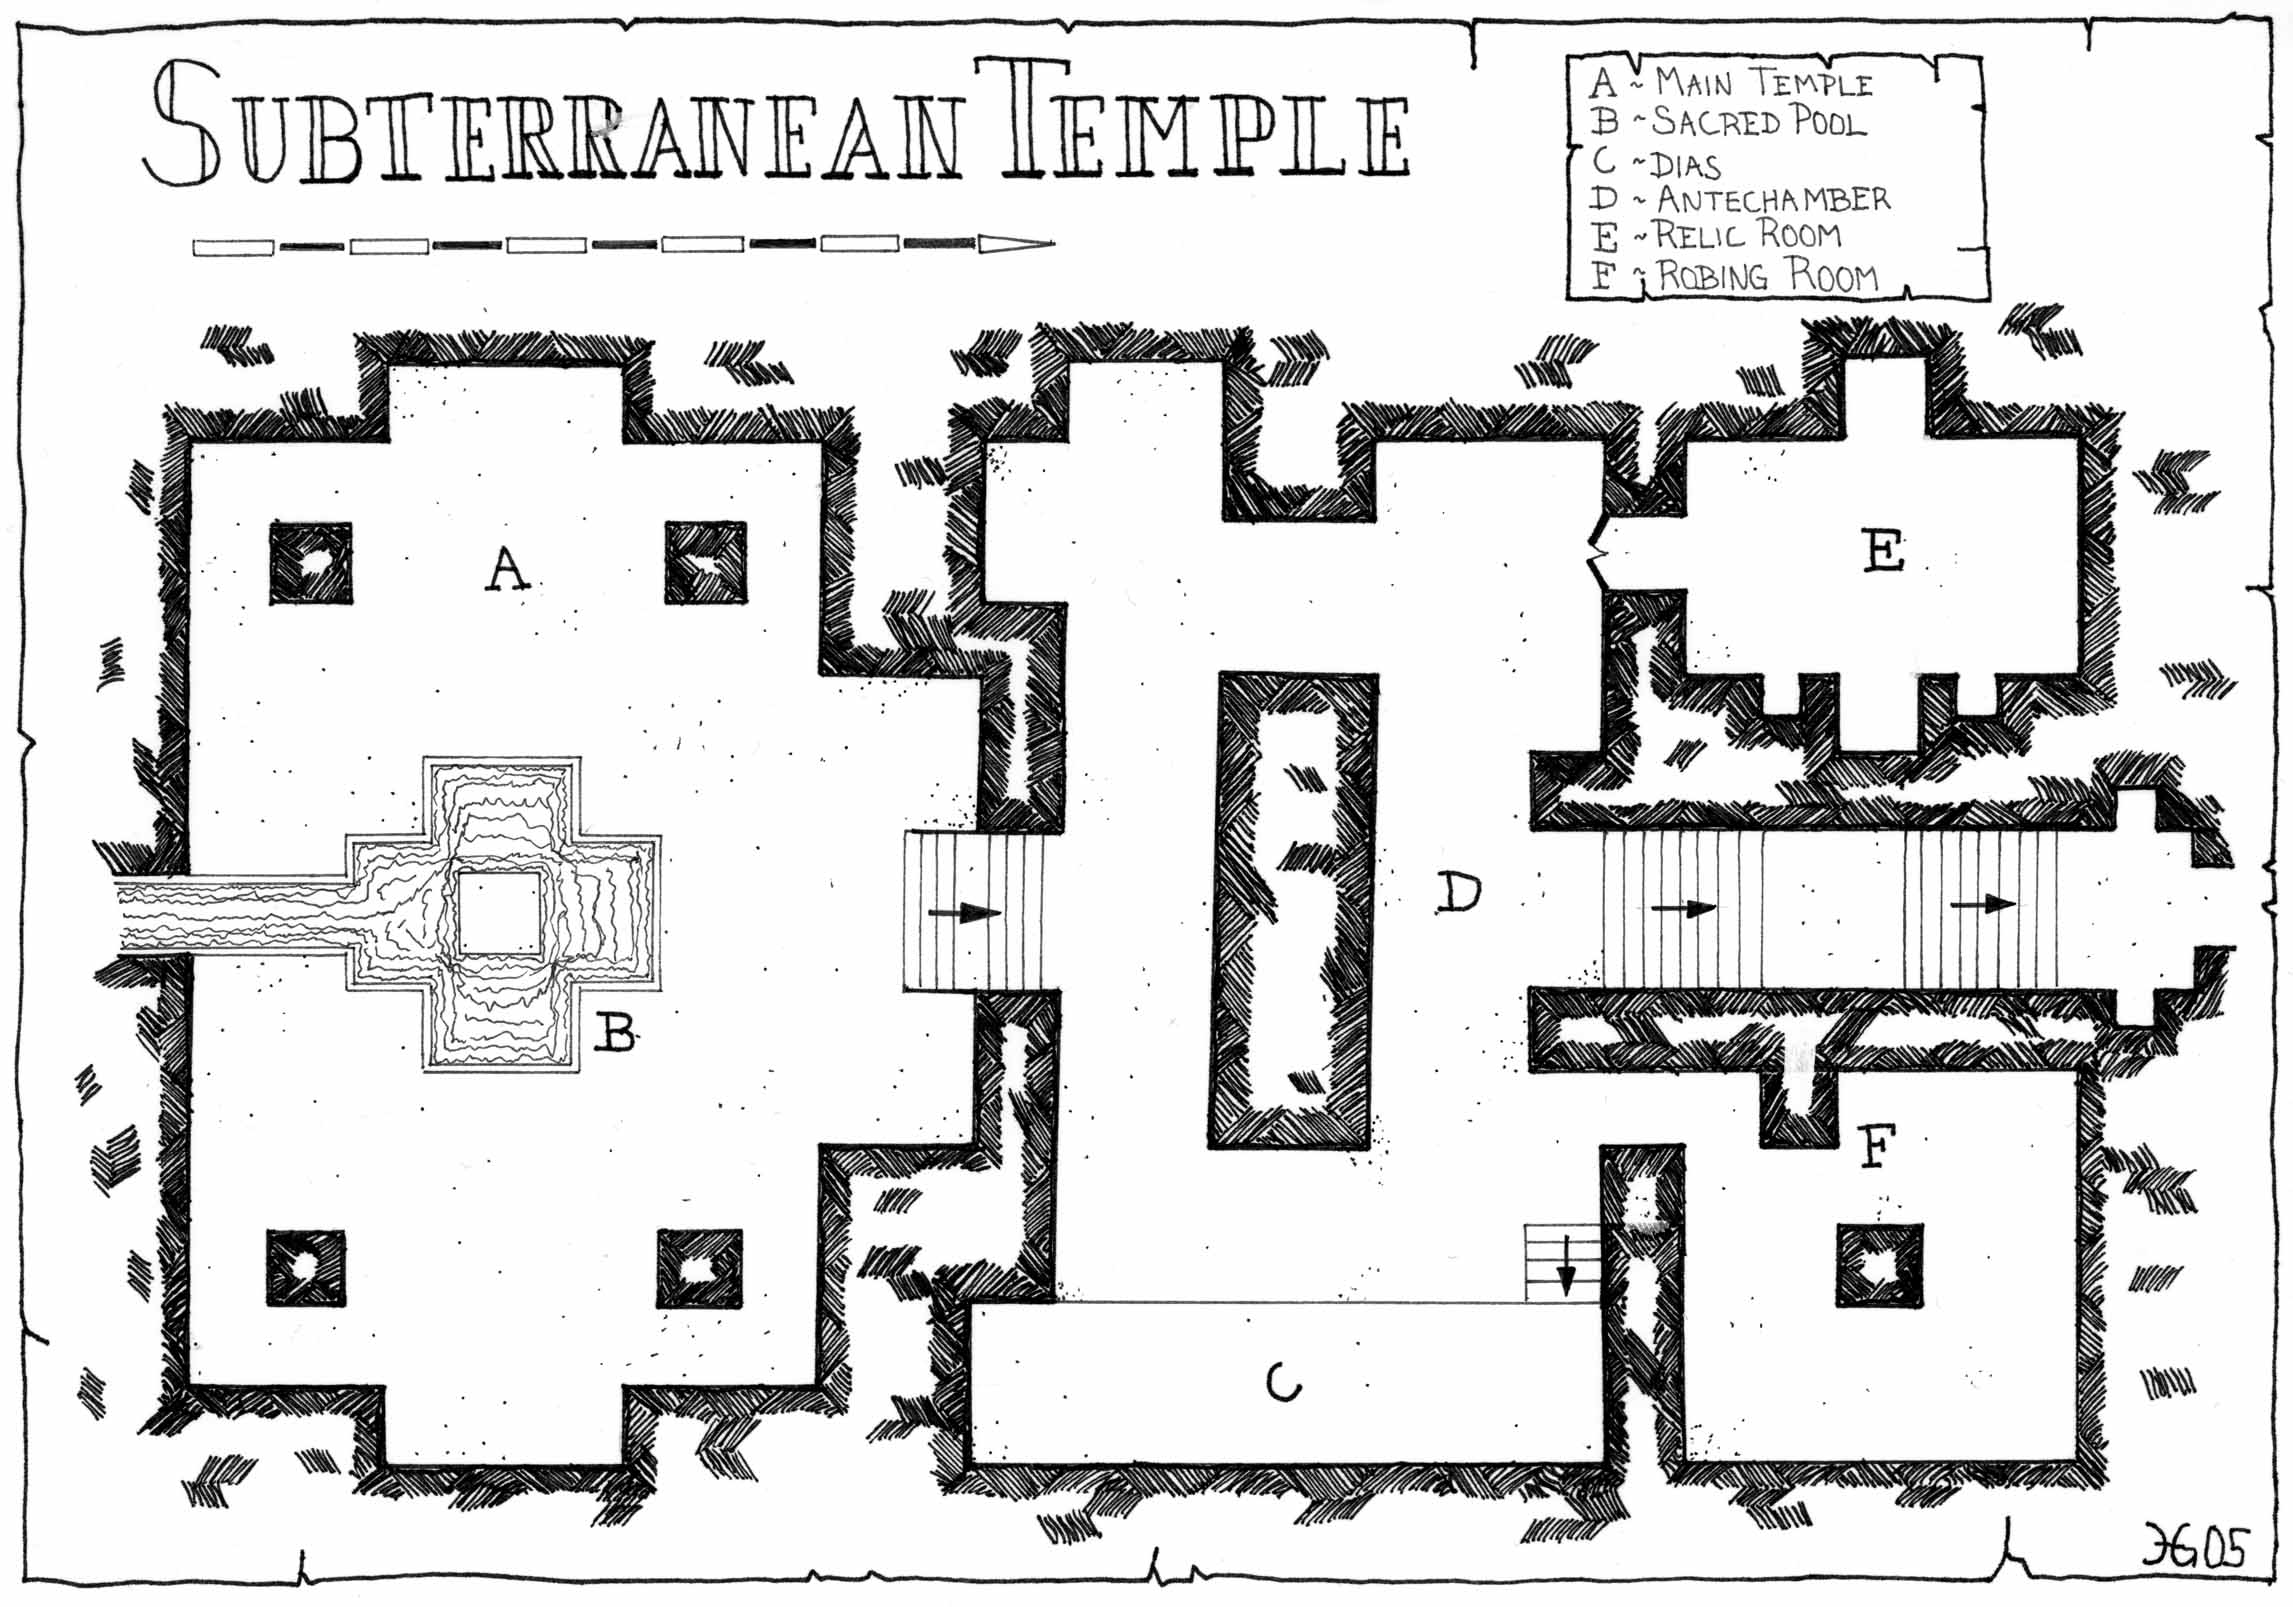 maps and floorplans